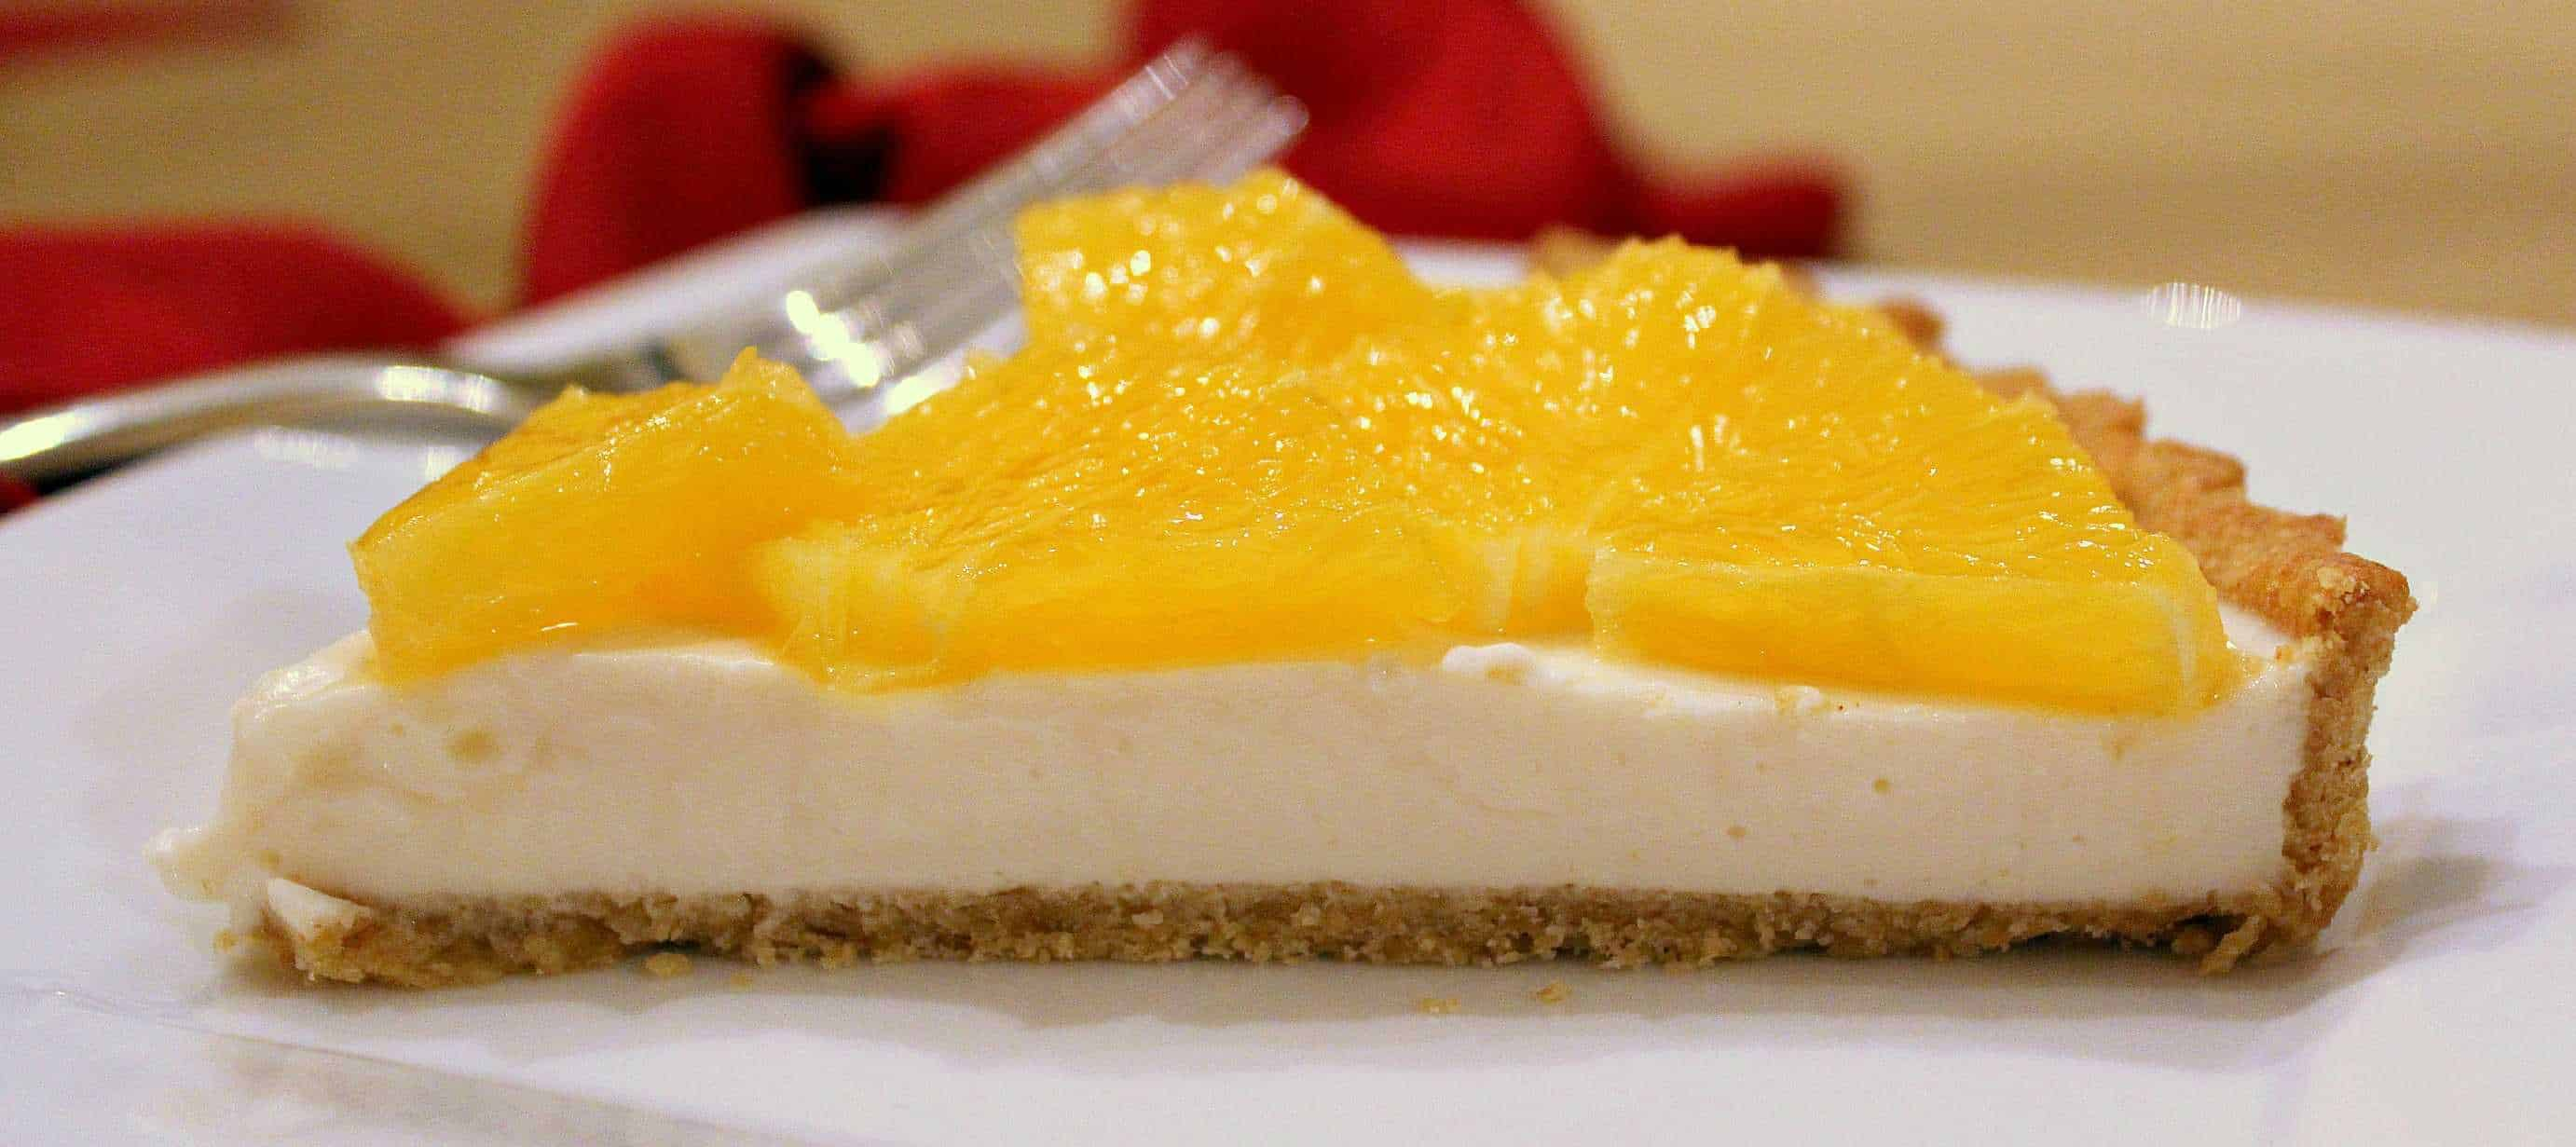 yogurt-tart-with-whole-wheat-crust-2